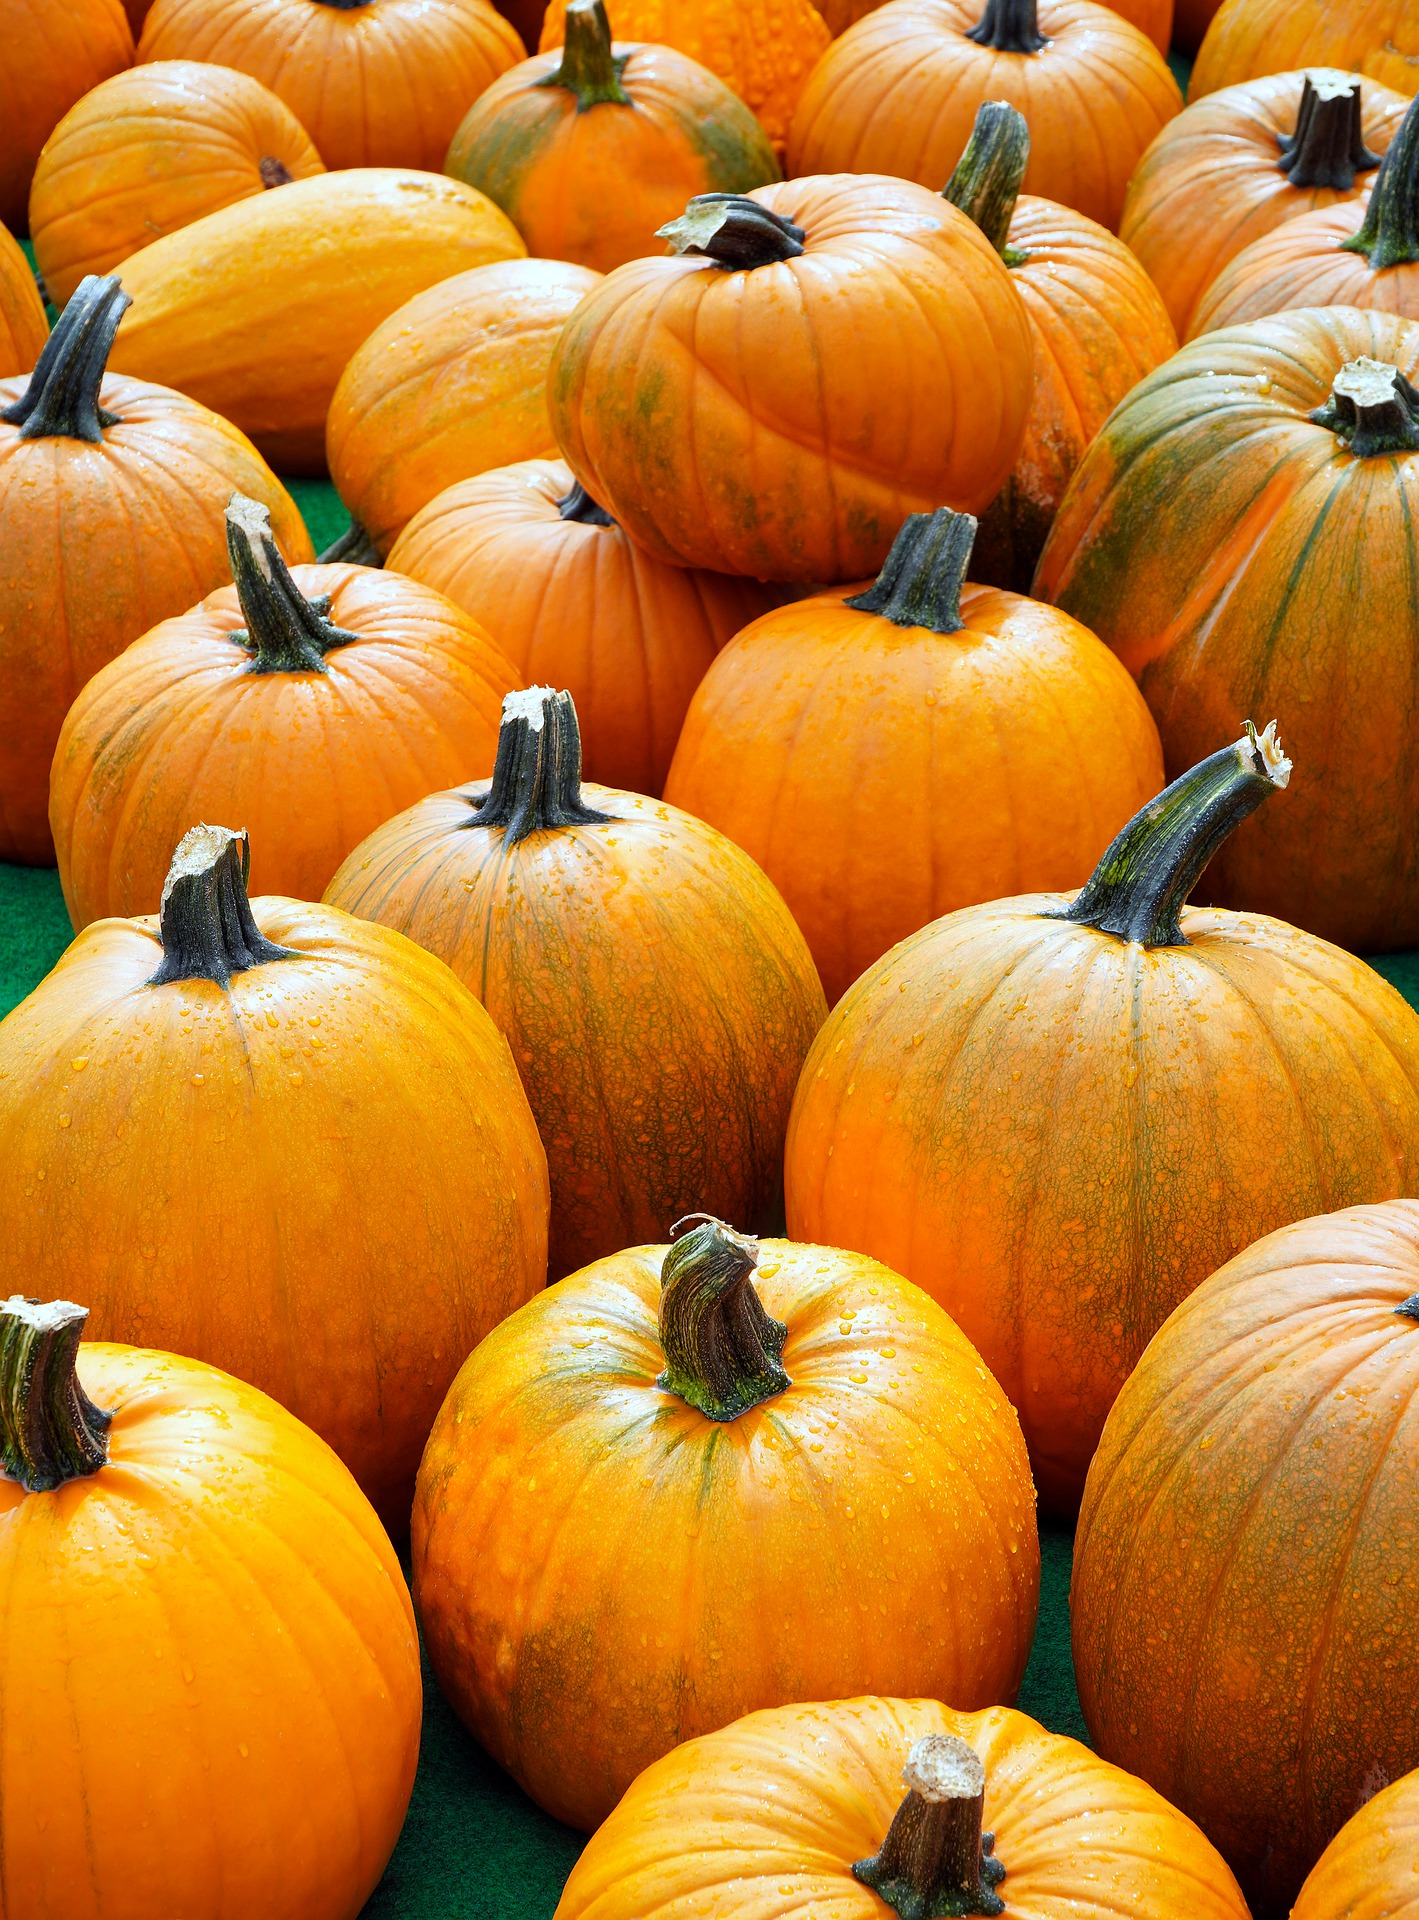 Photo of Lots of Pumpkins Sitting Together